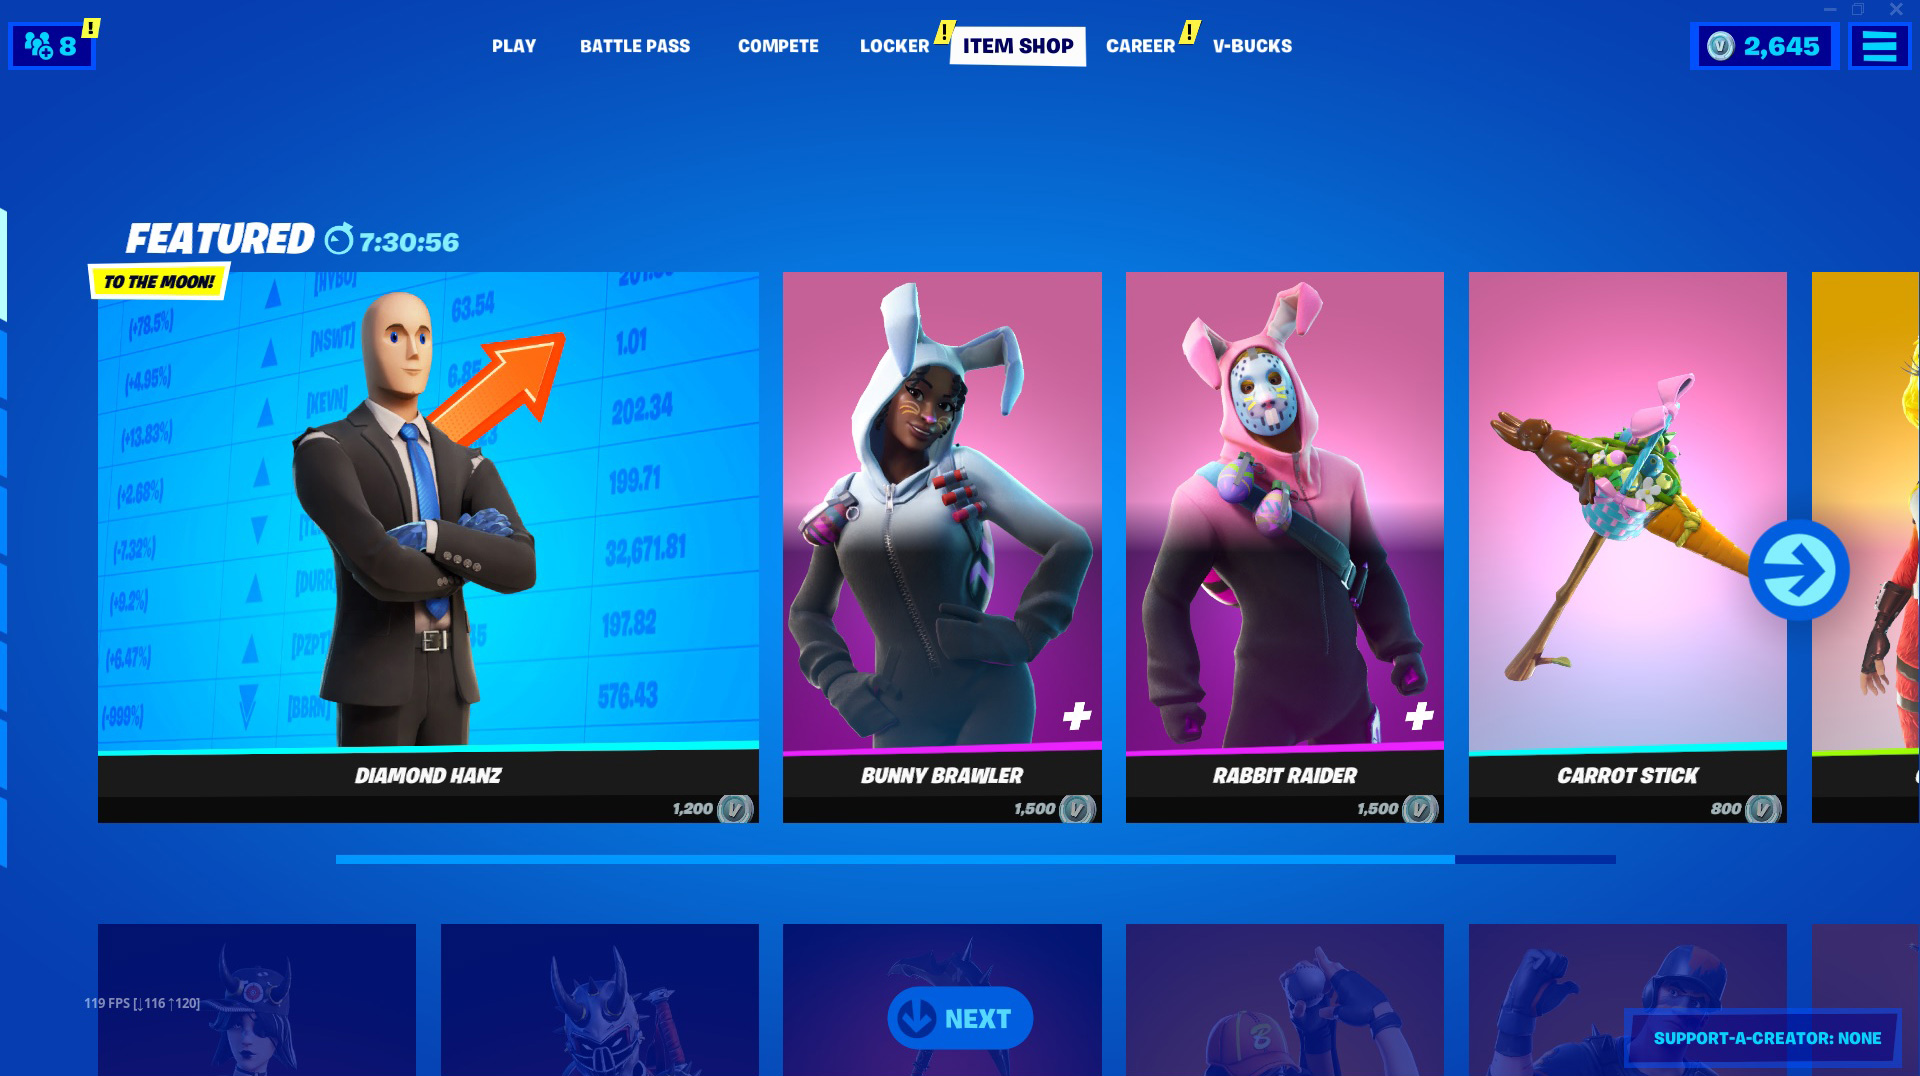 The stonk meme skin is available in the item shop